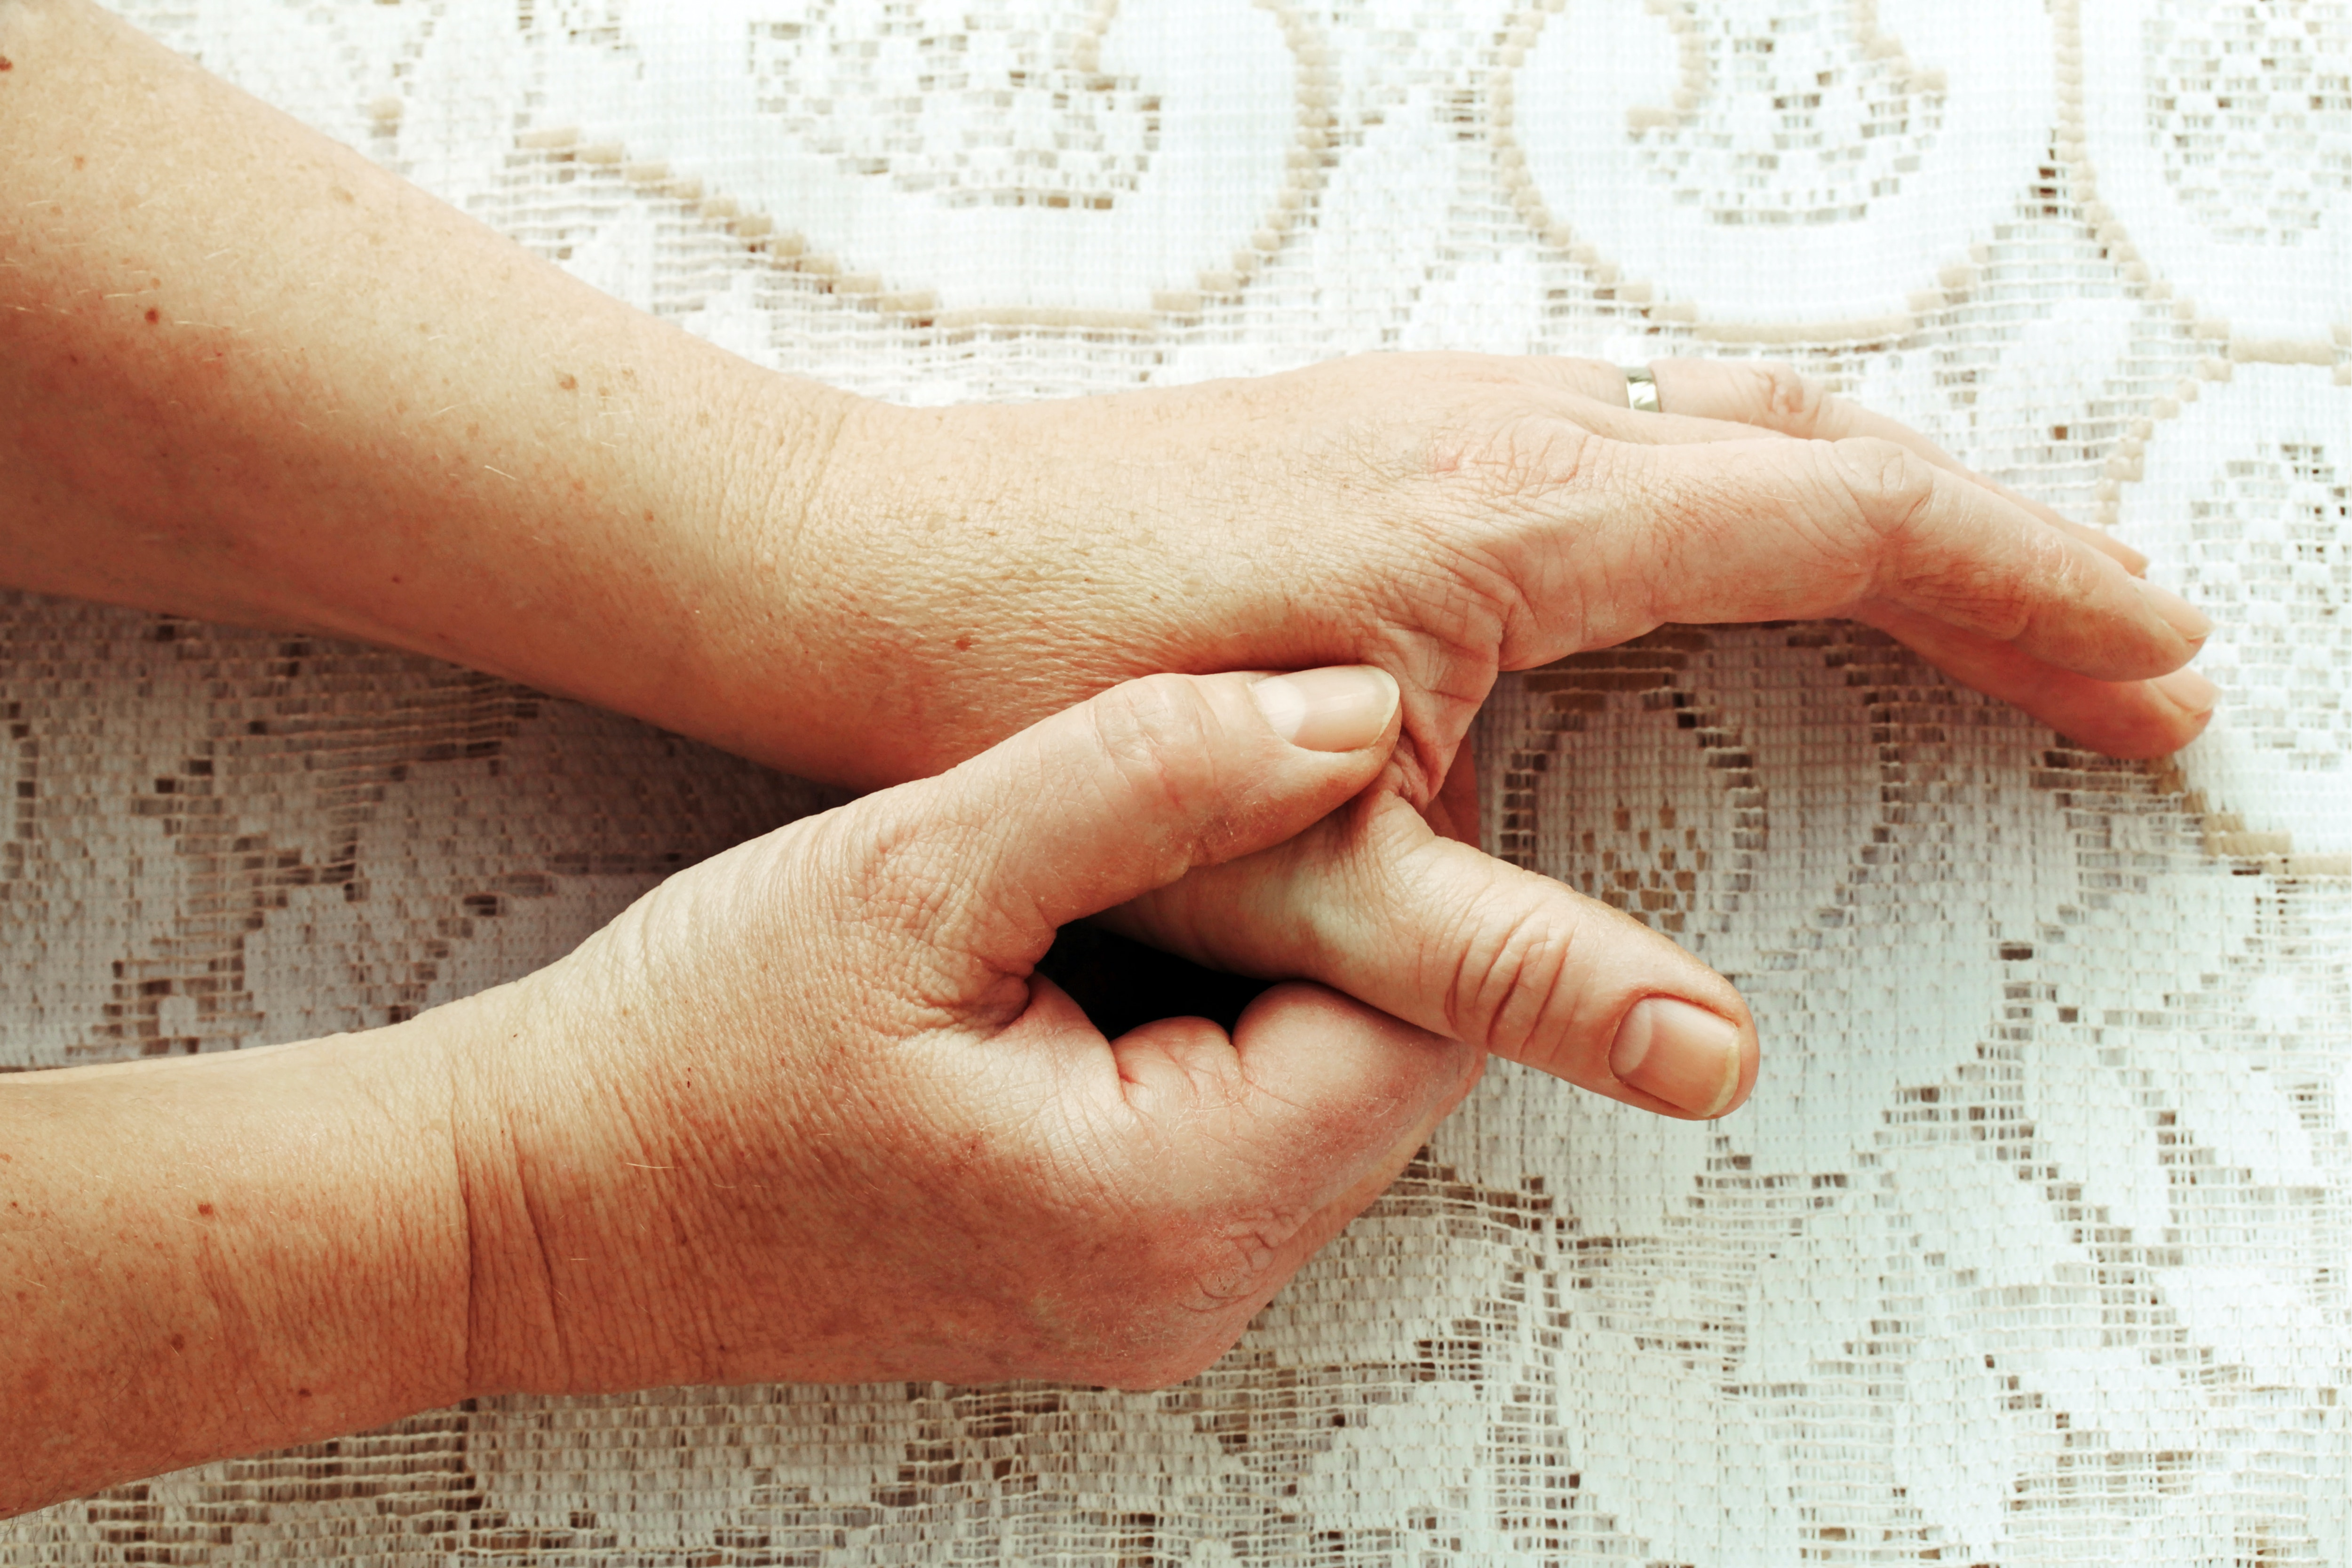 An image depicting a person suffering from thumb pain symptoms